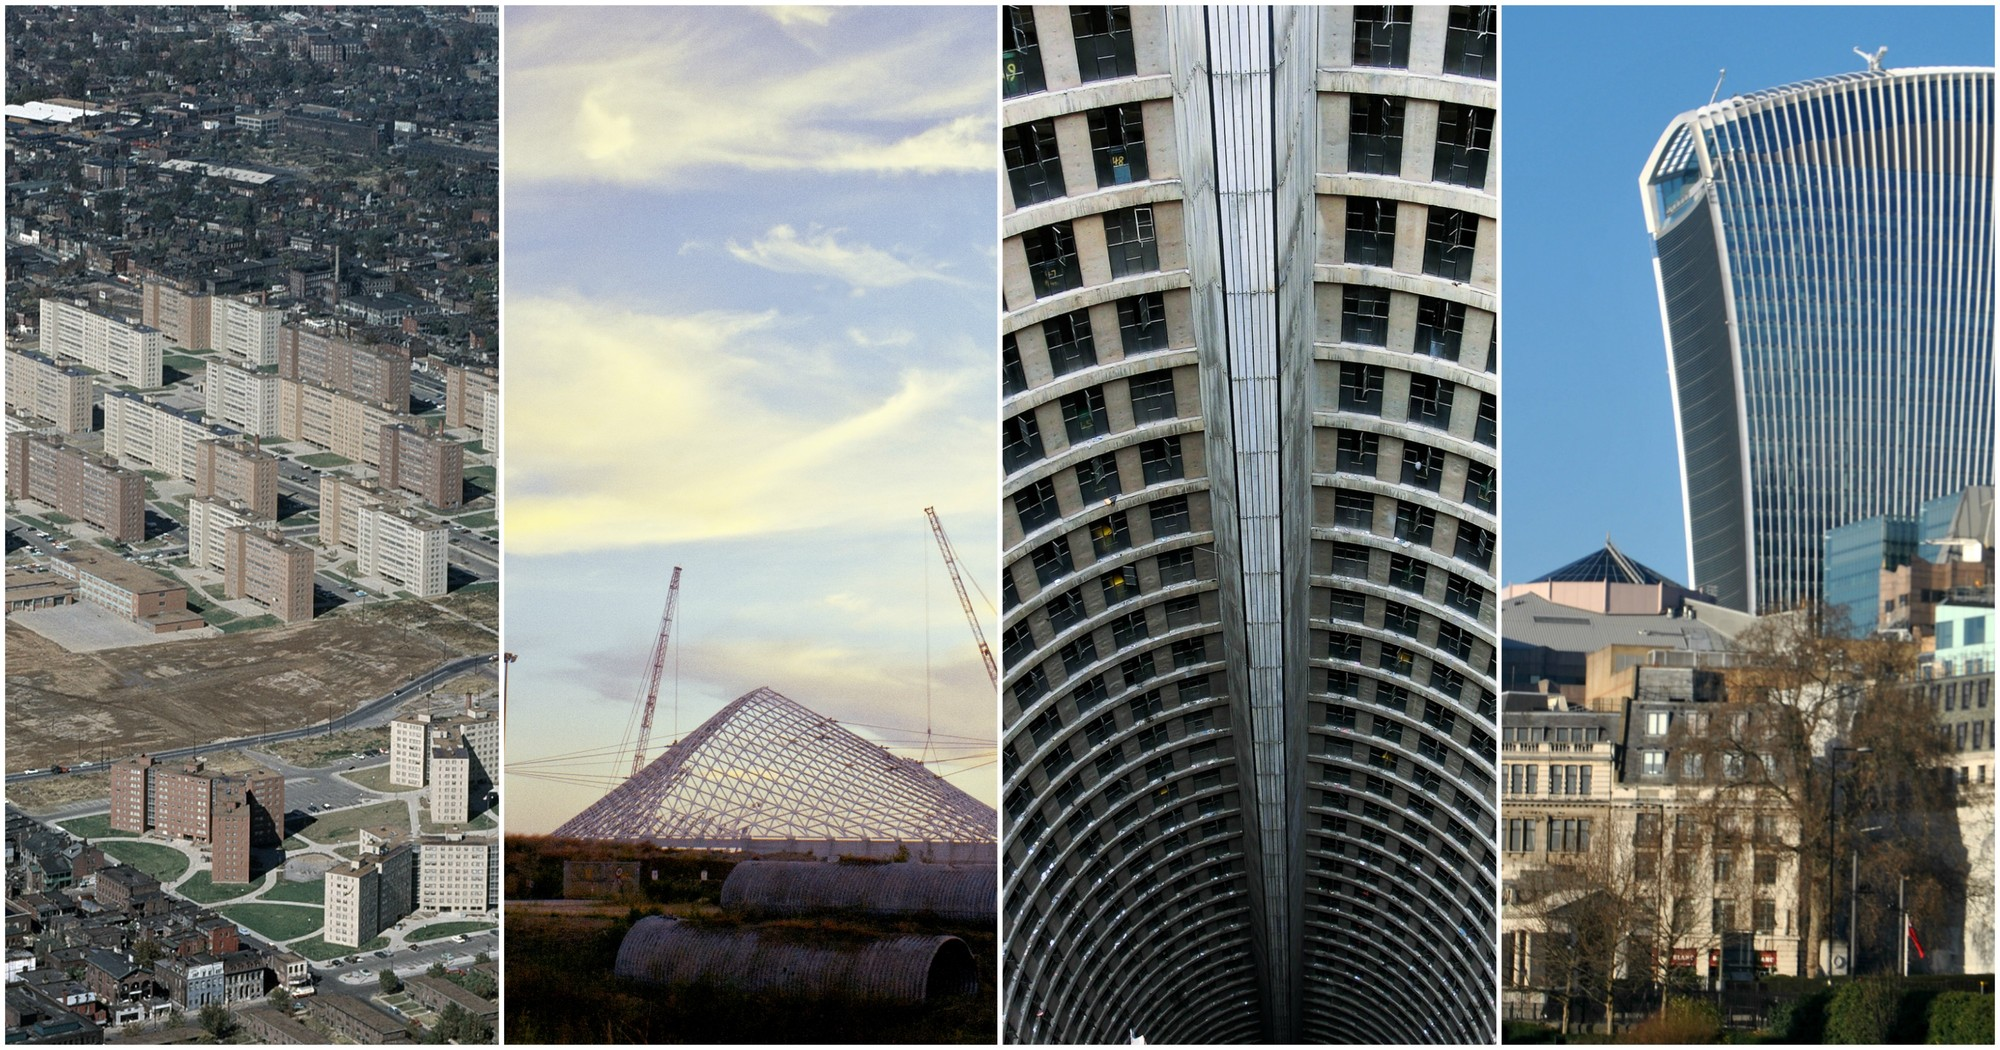 7 Architectural Experiments that Failed Spectacularly